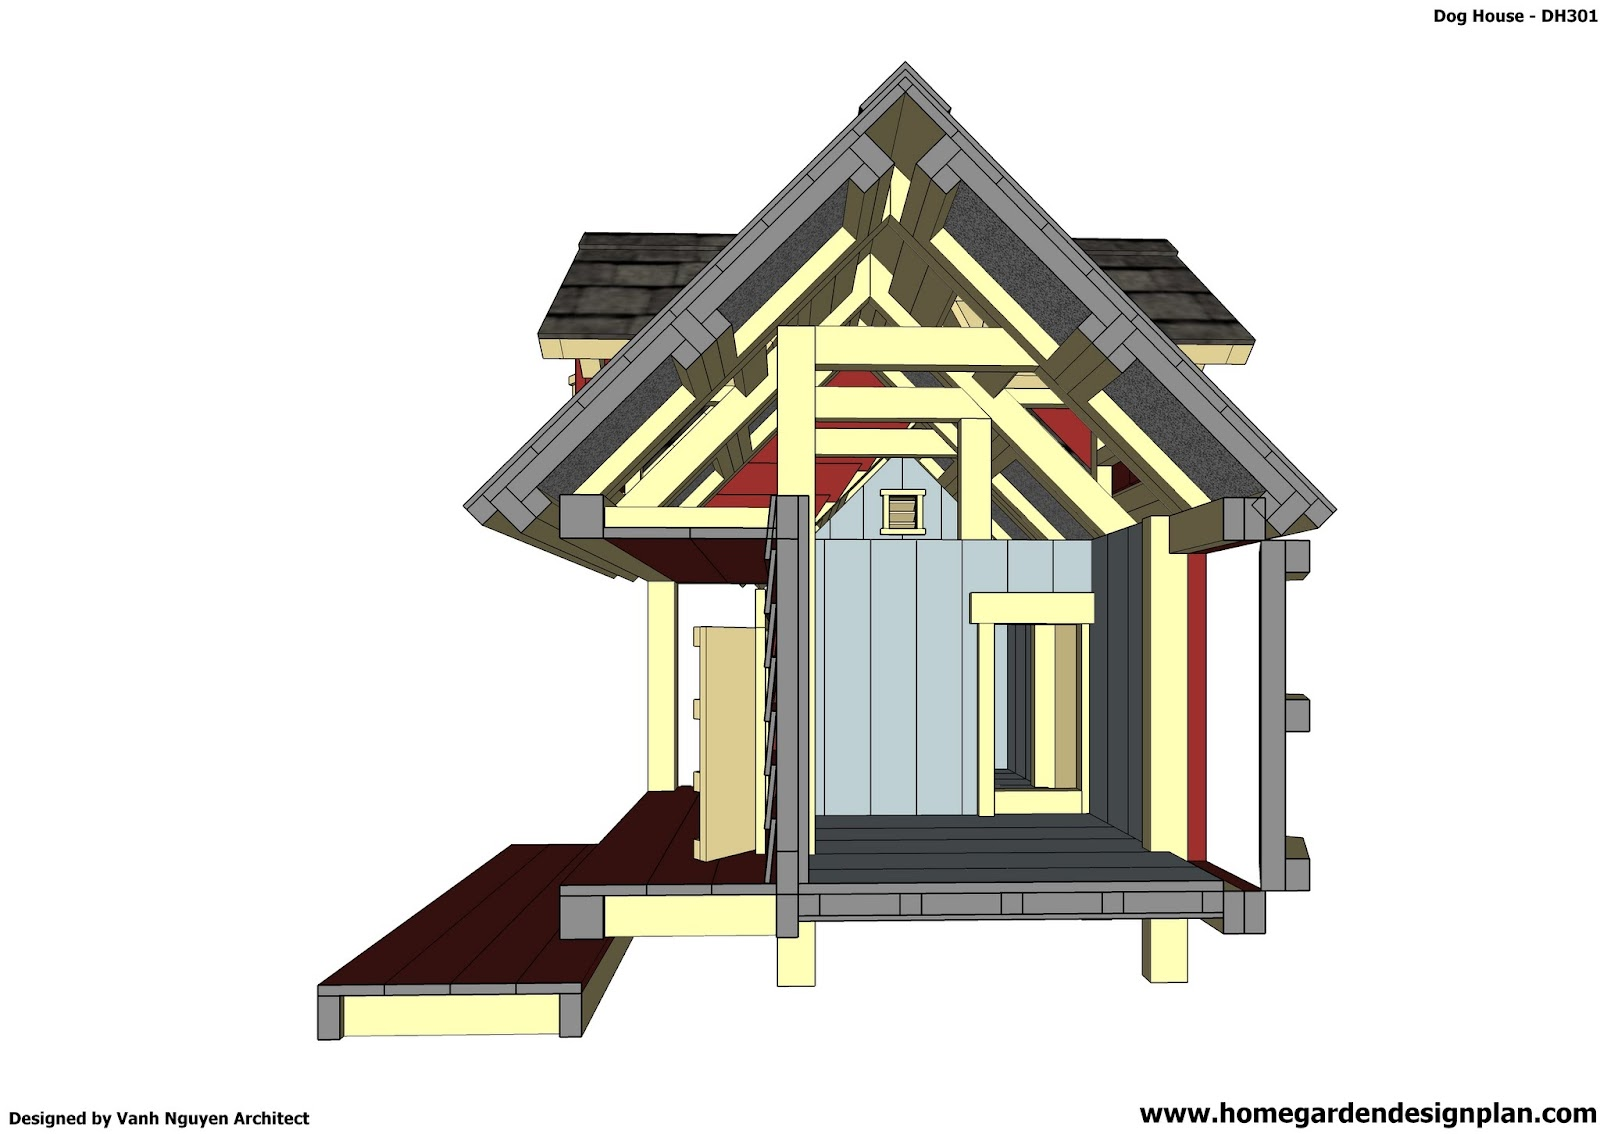 Home Garden Plans Dh301 Insulated Dog House Plans